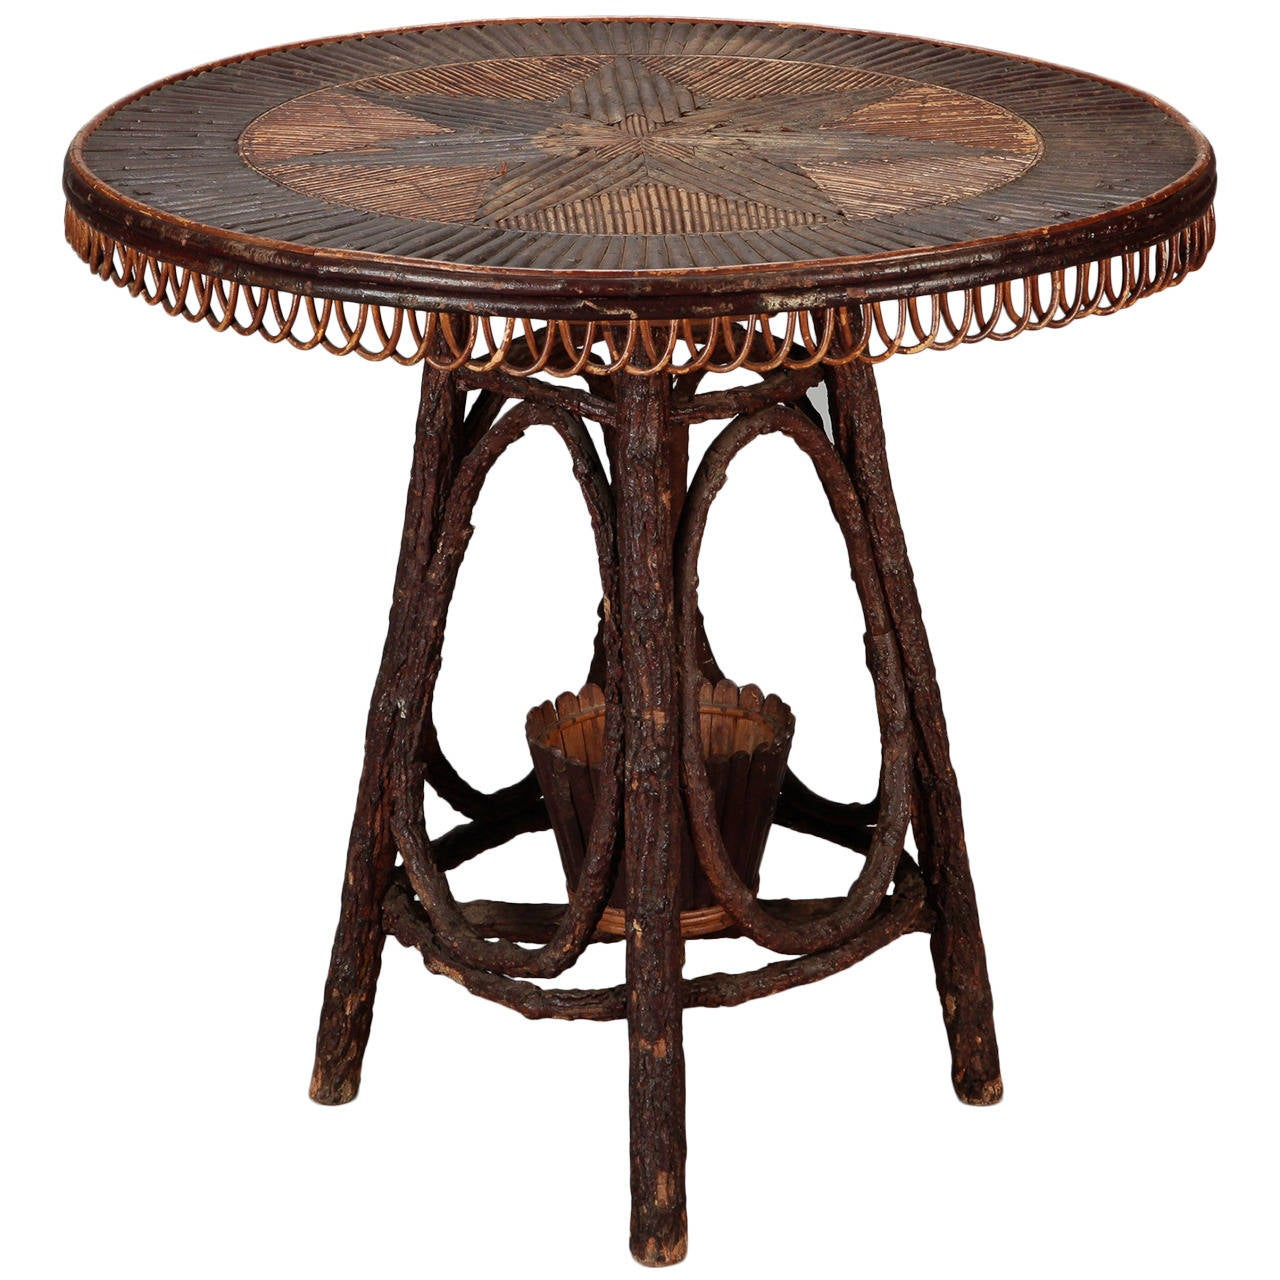 French Round Bent Willow Twig Table With Star Design Inlay 1